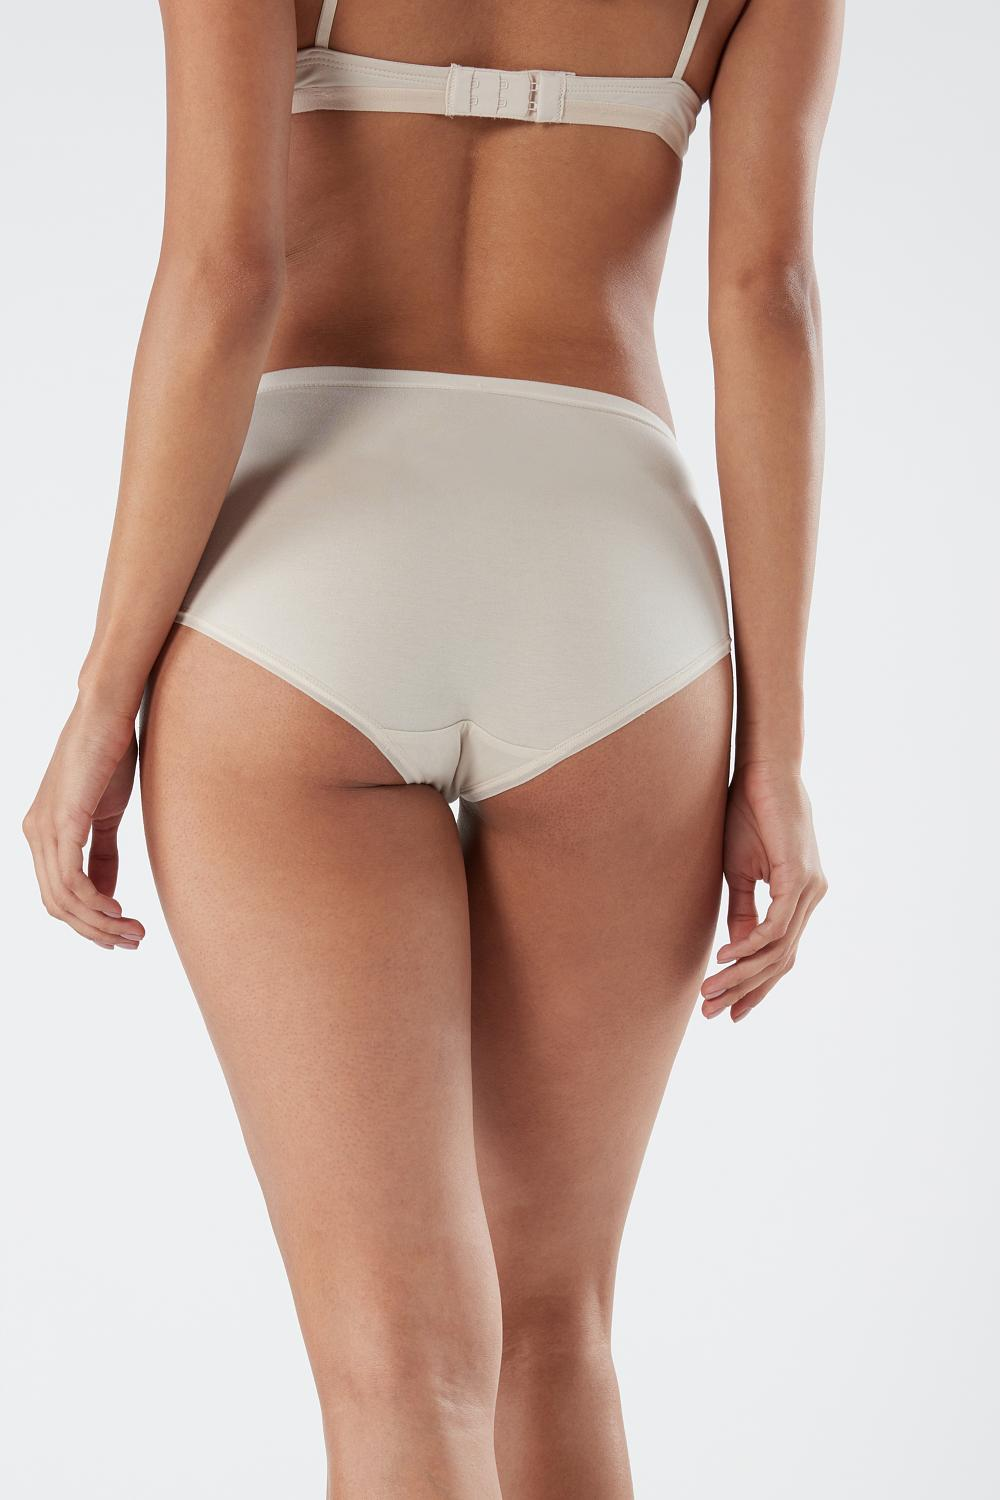 Snug Natural Cotton Panties